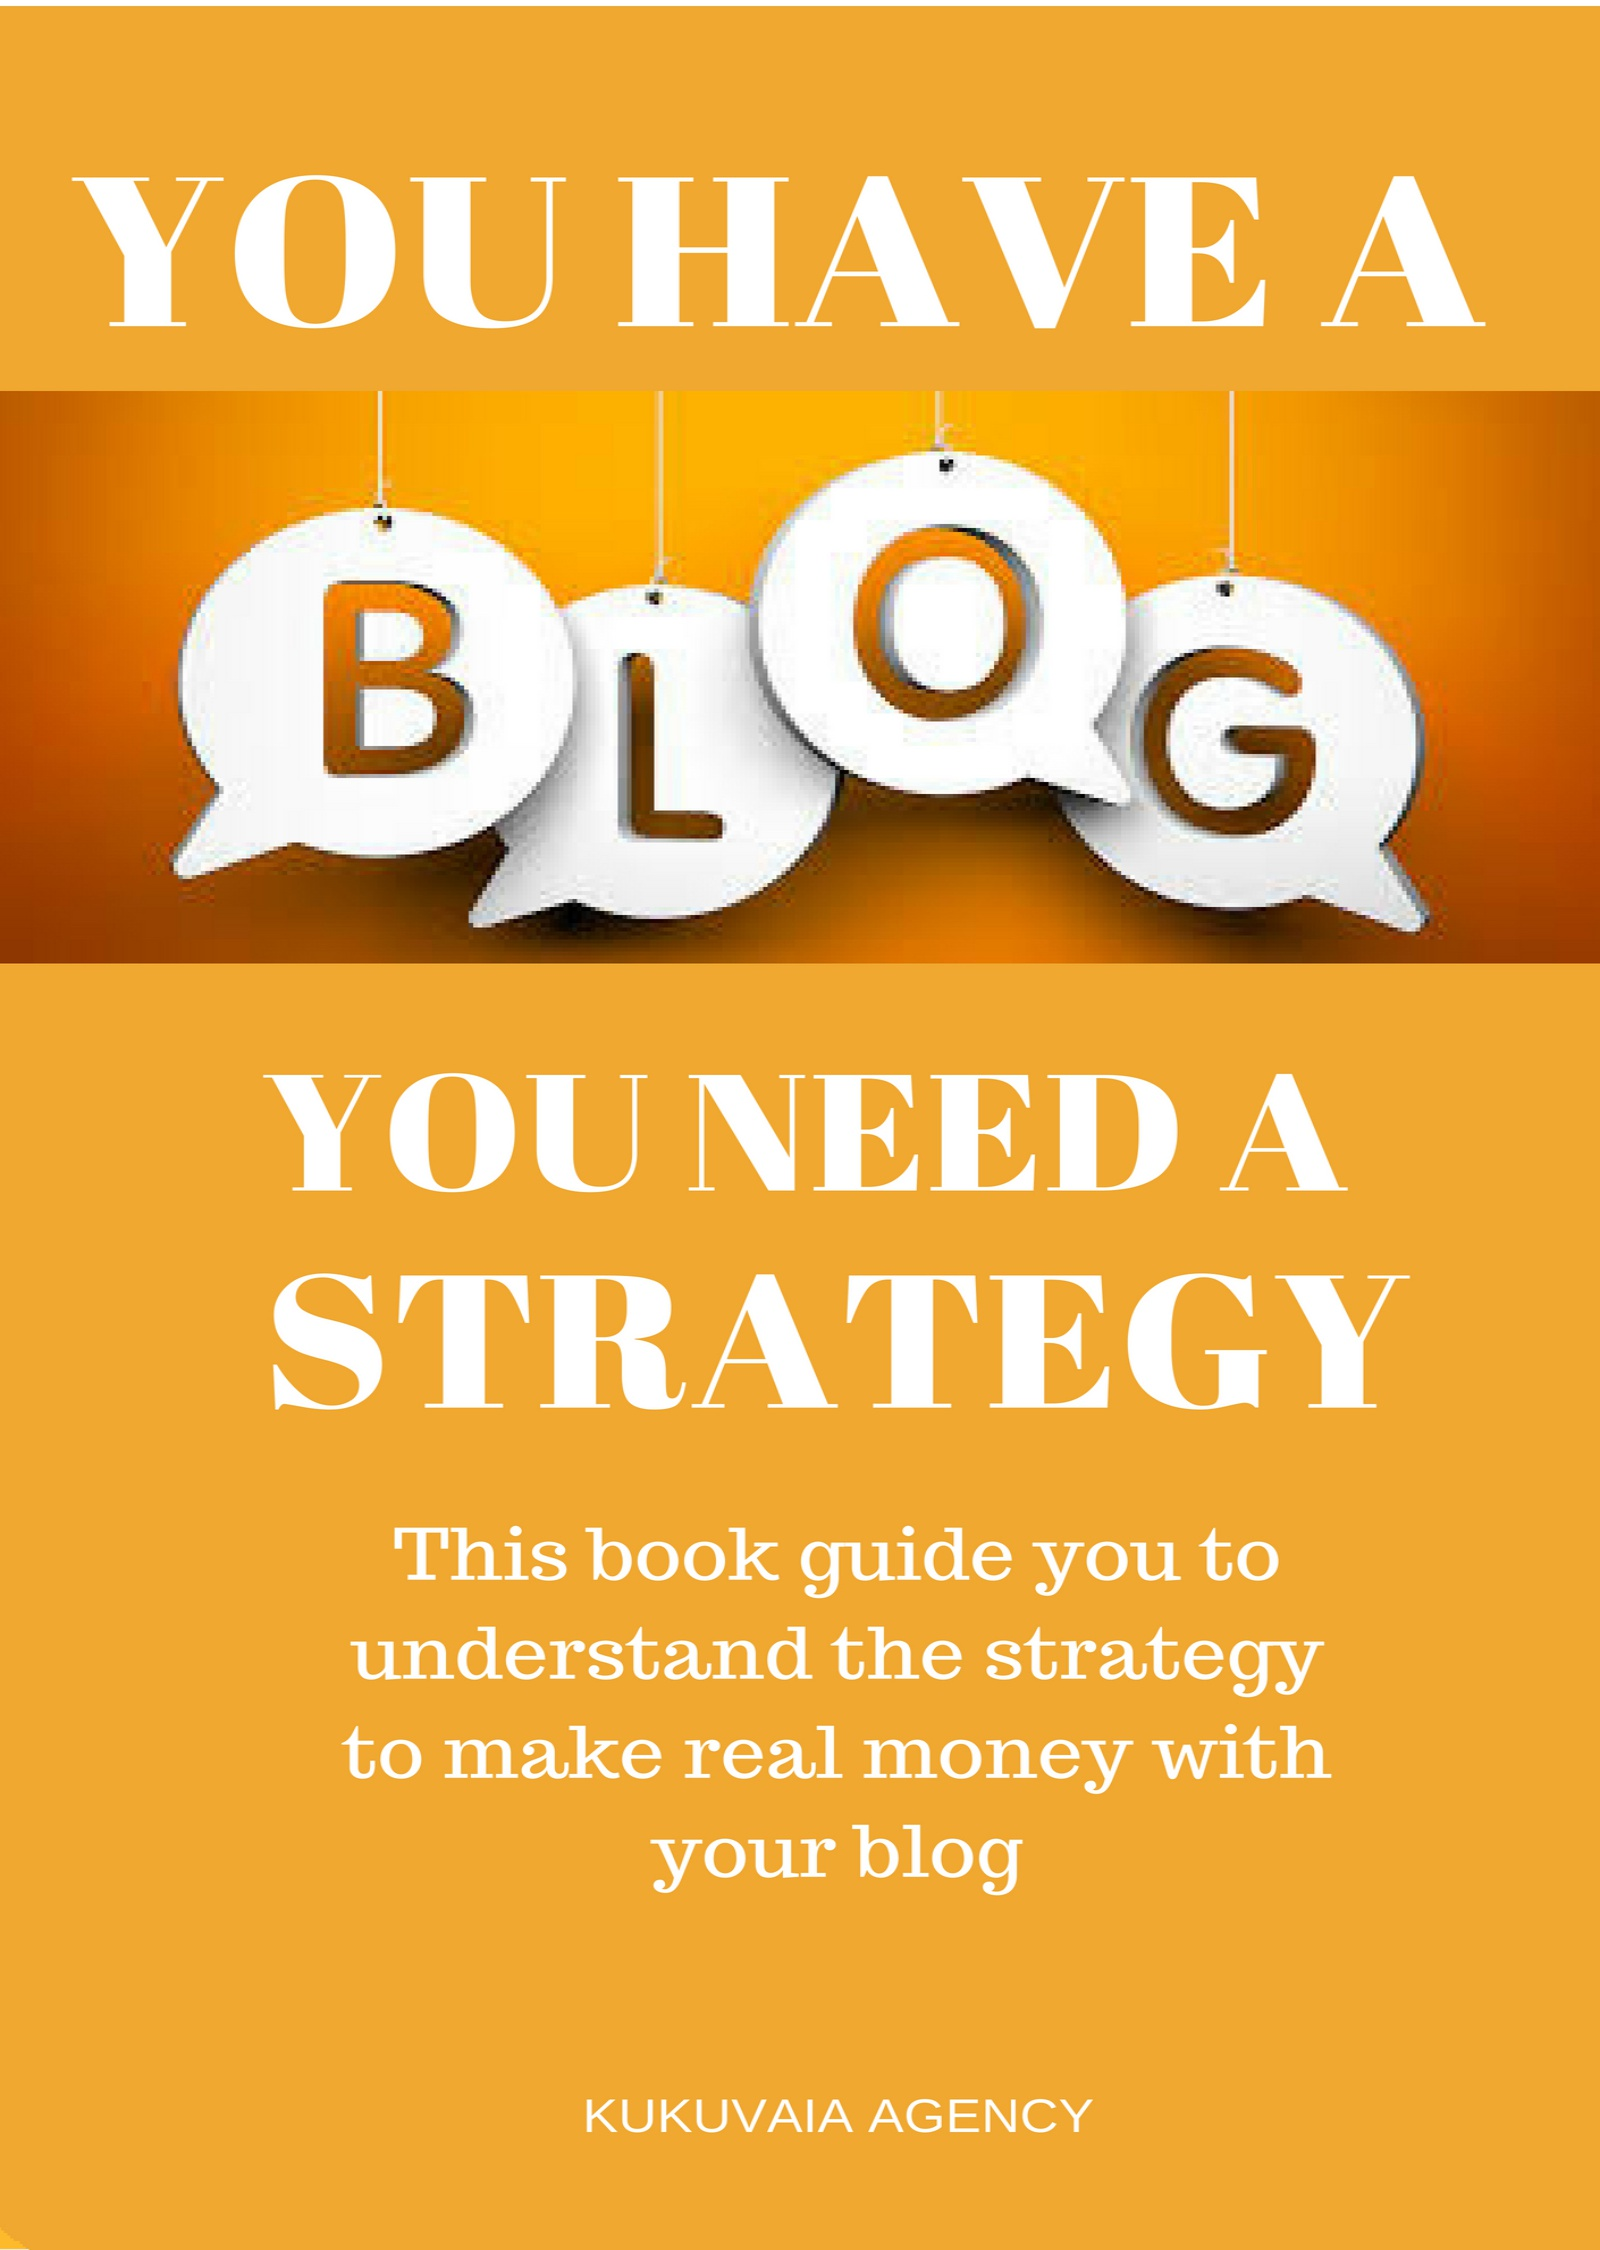 You have a Blog You Need a Strategy